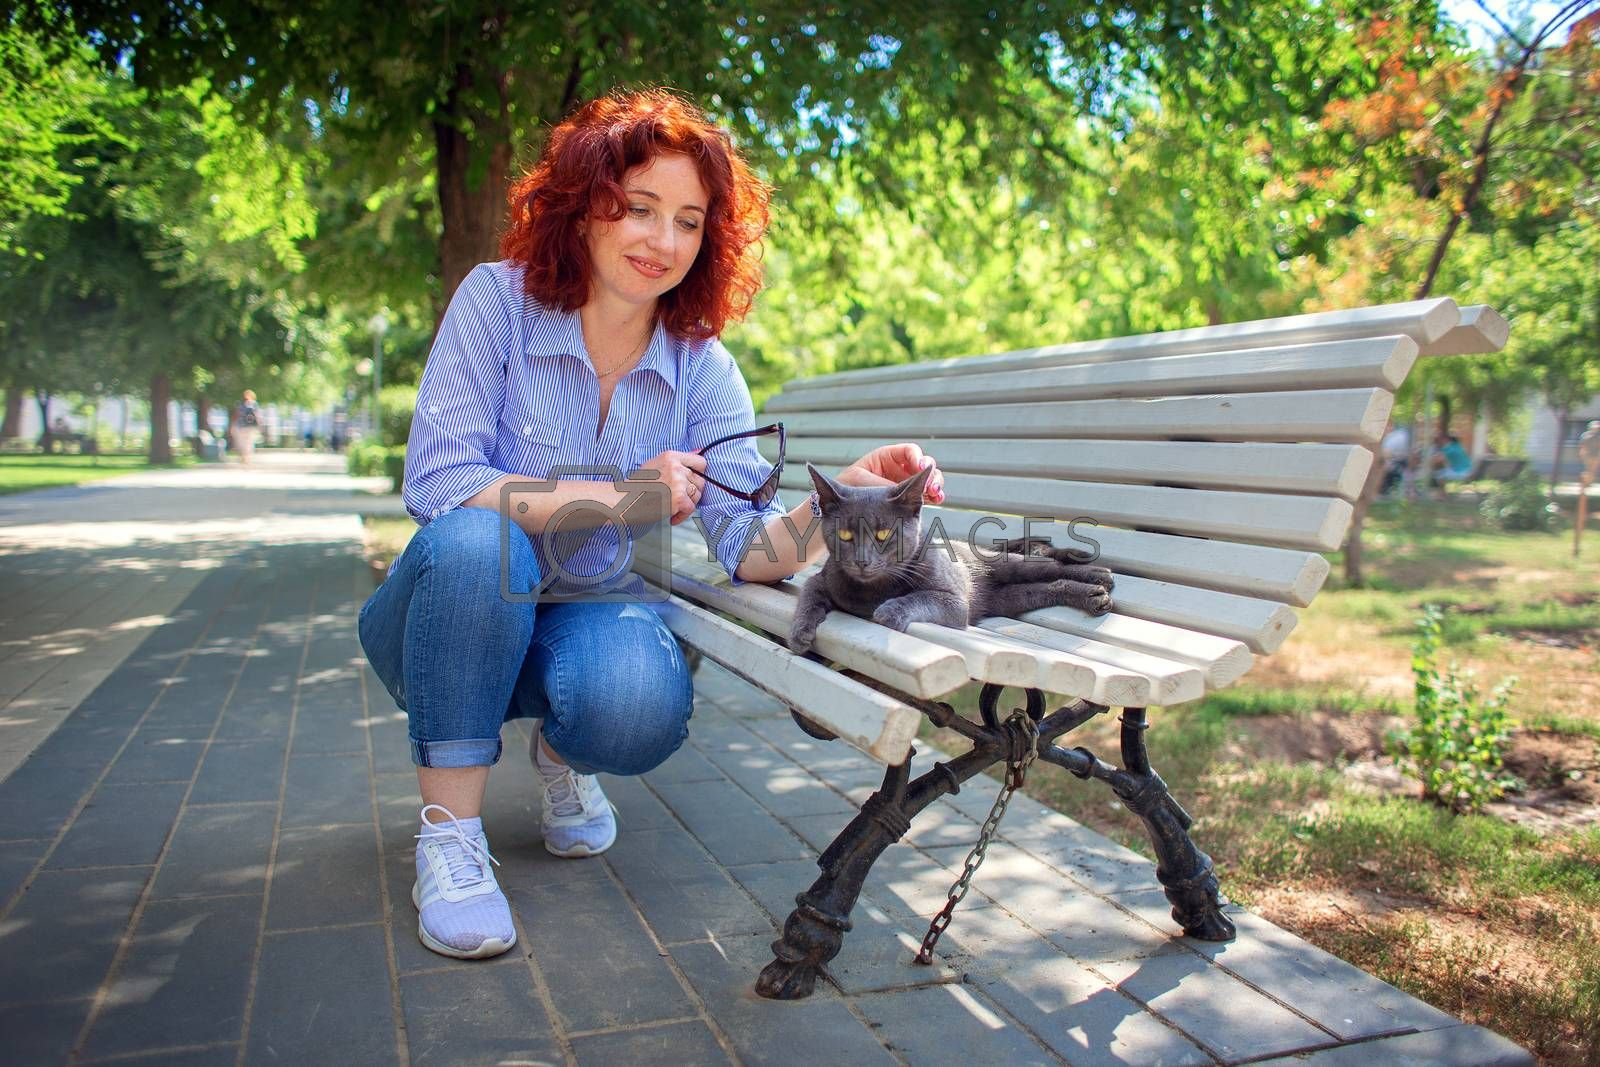 A red-haired curly girl in the park on a bench stroking a gray street cat. Love to the animals